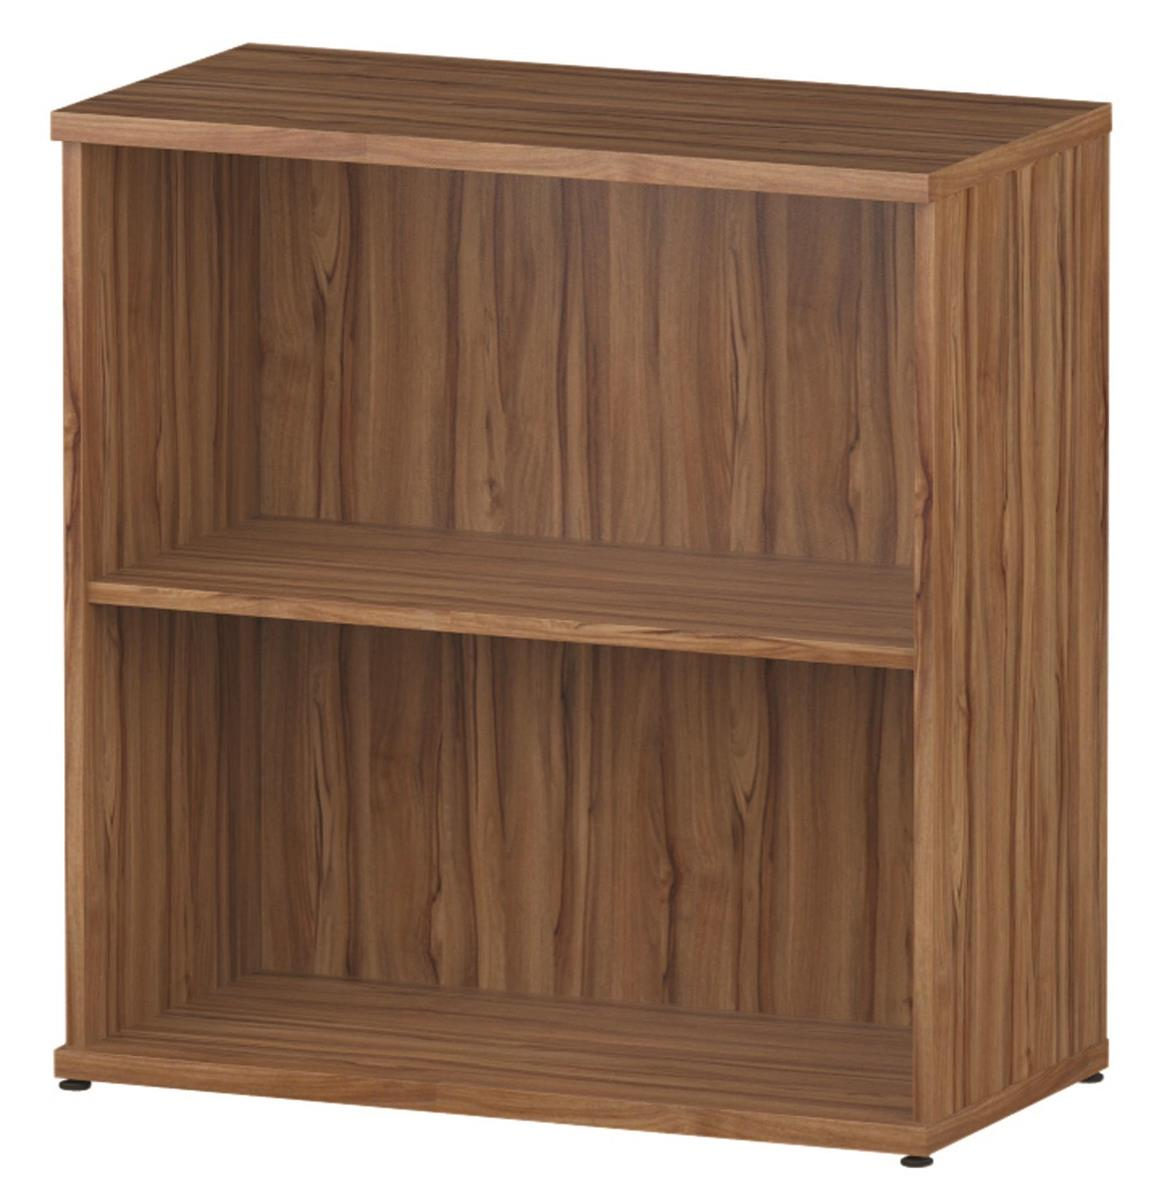 Trexus Low Bookcase W800xH800mm 1 Shelf Walnut